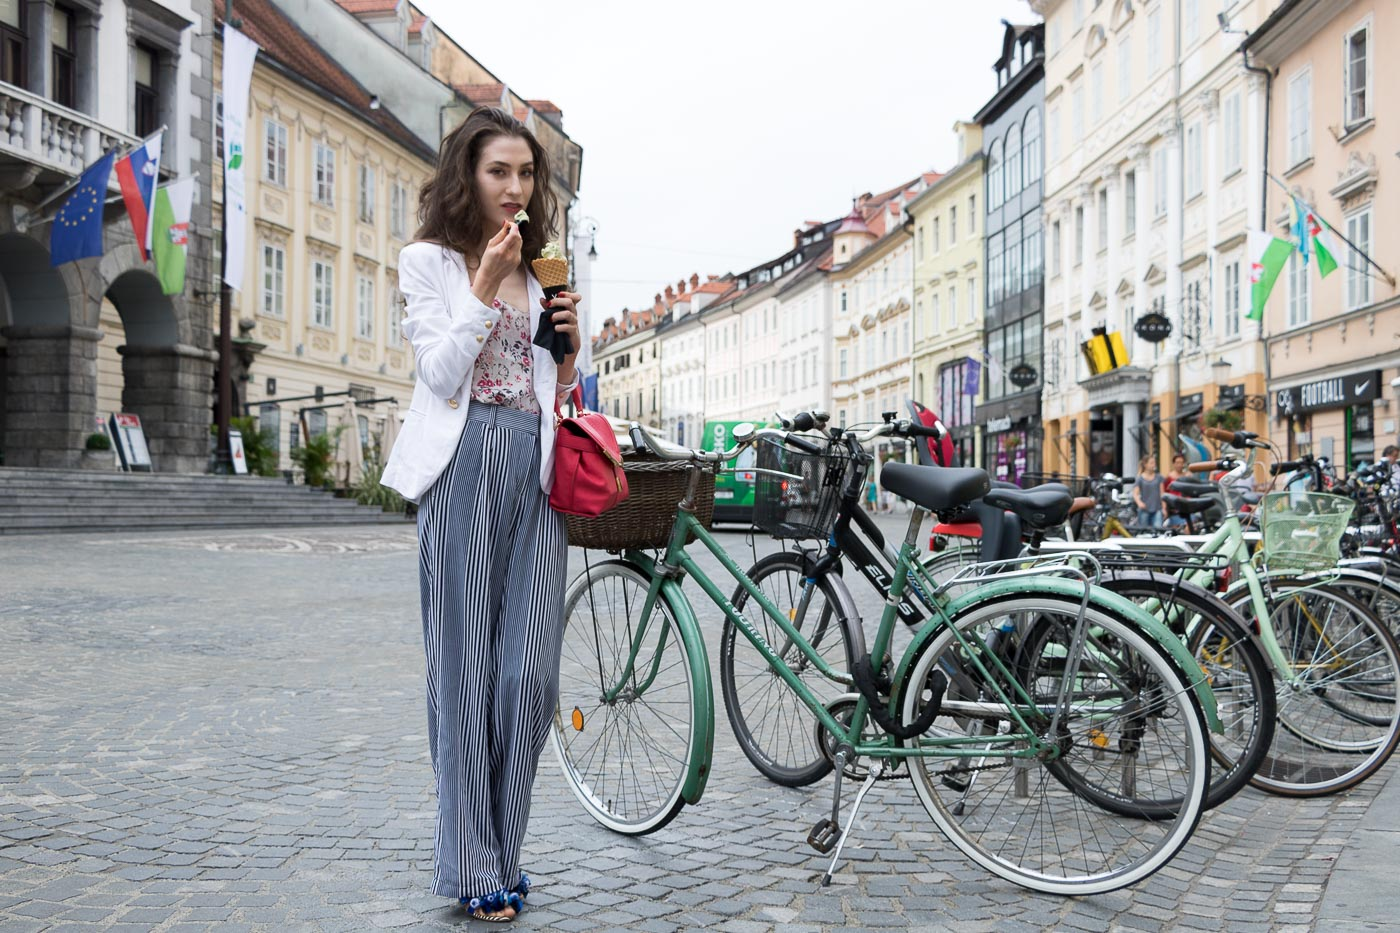 Fashion Blogger Veronika Lipar of Brunette from Wall Street eating pistachio ice cream on the street wearing wide-leg Michael Kors pants with stripes, white blazer, floral slip top from Stella McCartney and blue Aquazzura sandals